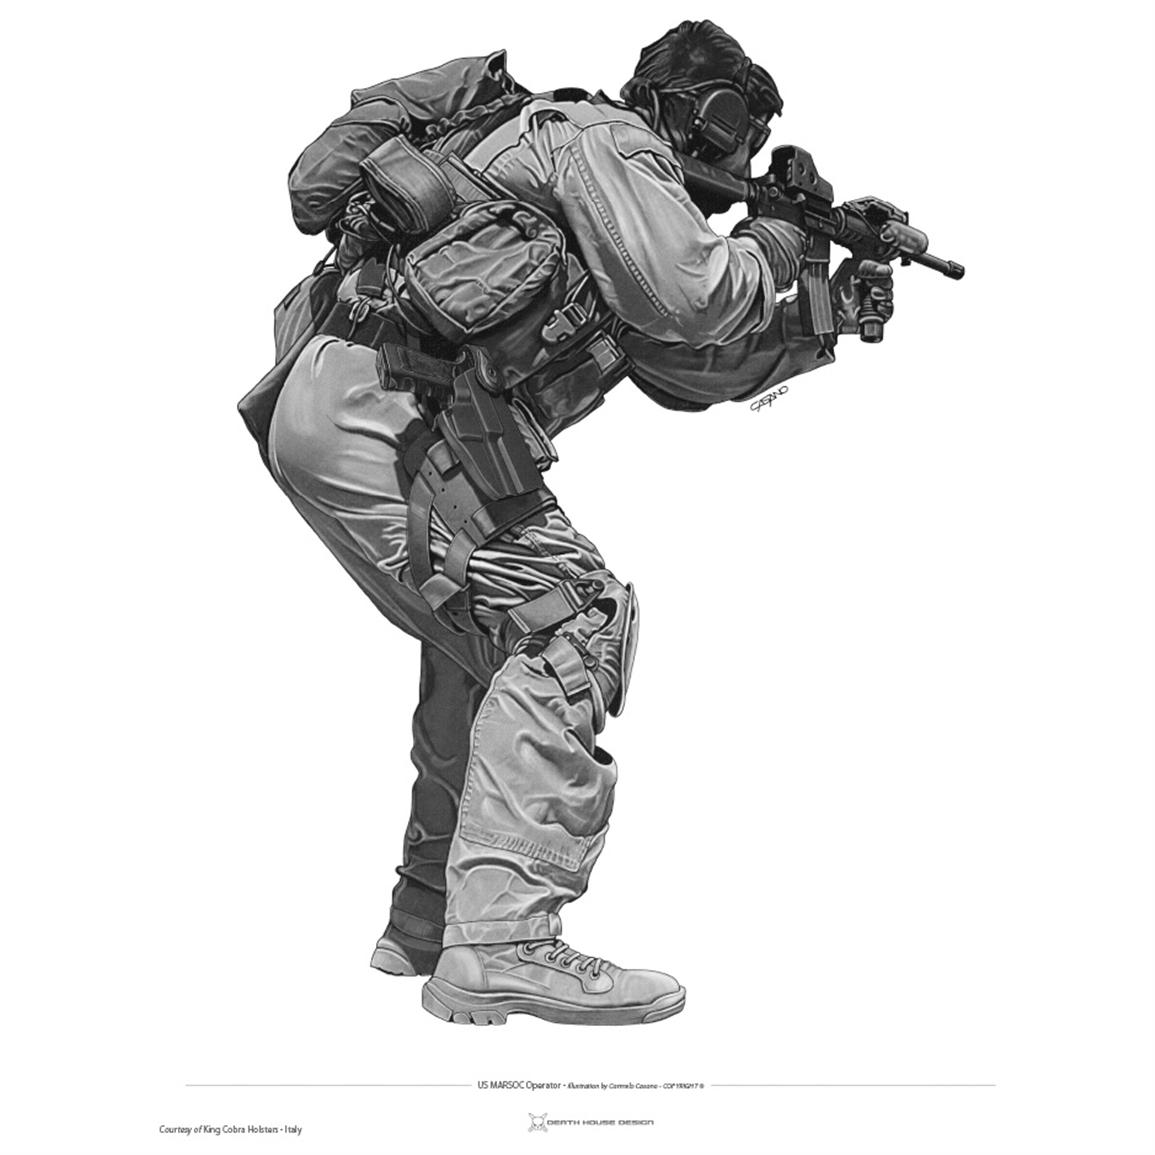 U.S. Navy SEALs & Spec-Ops #4 14x20 inch Print by Death House Design